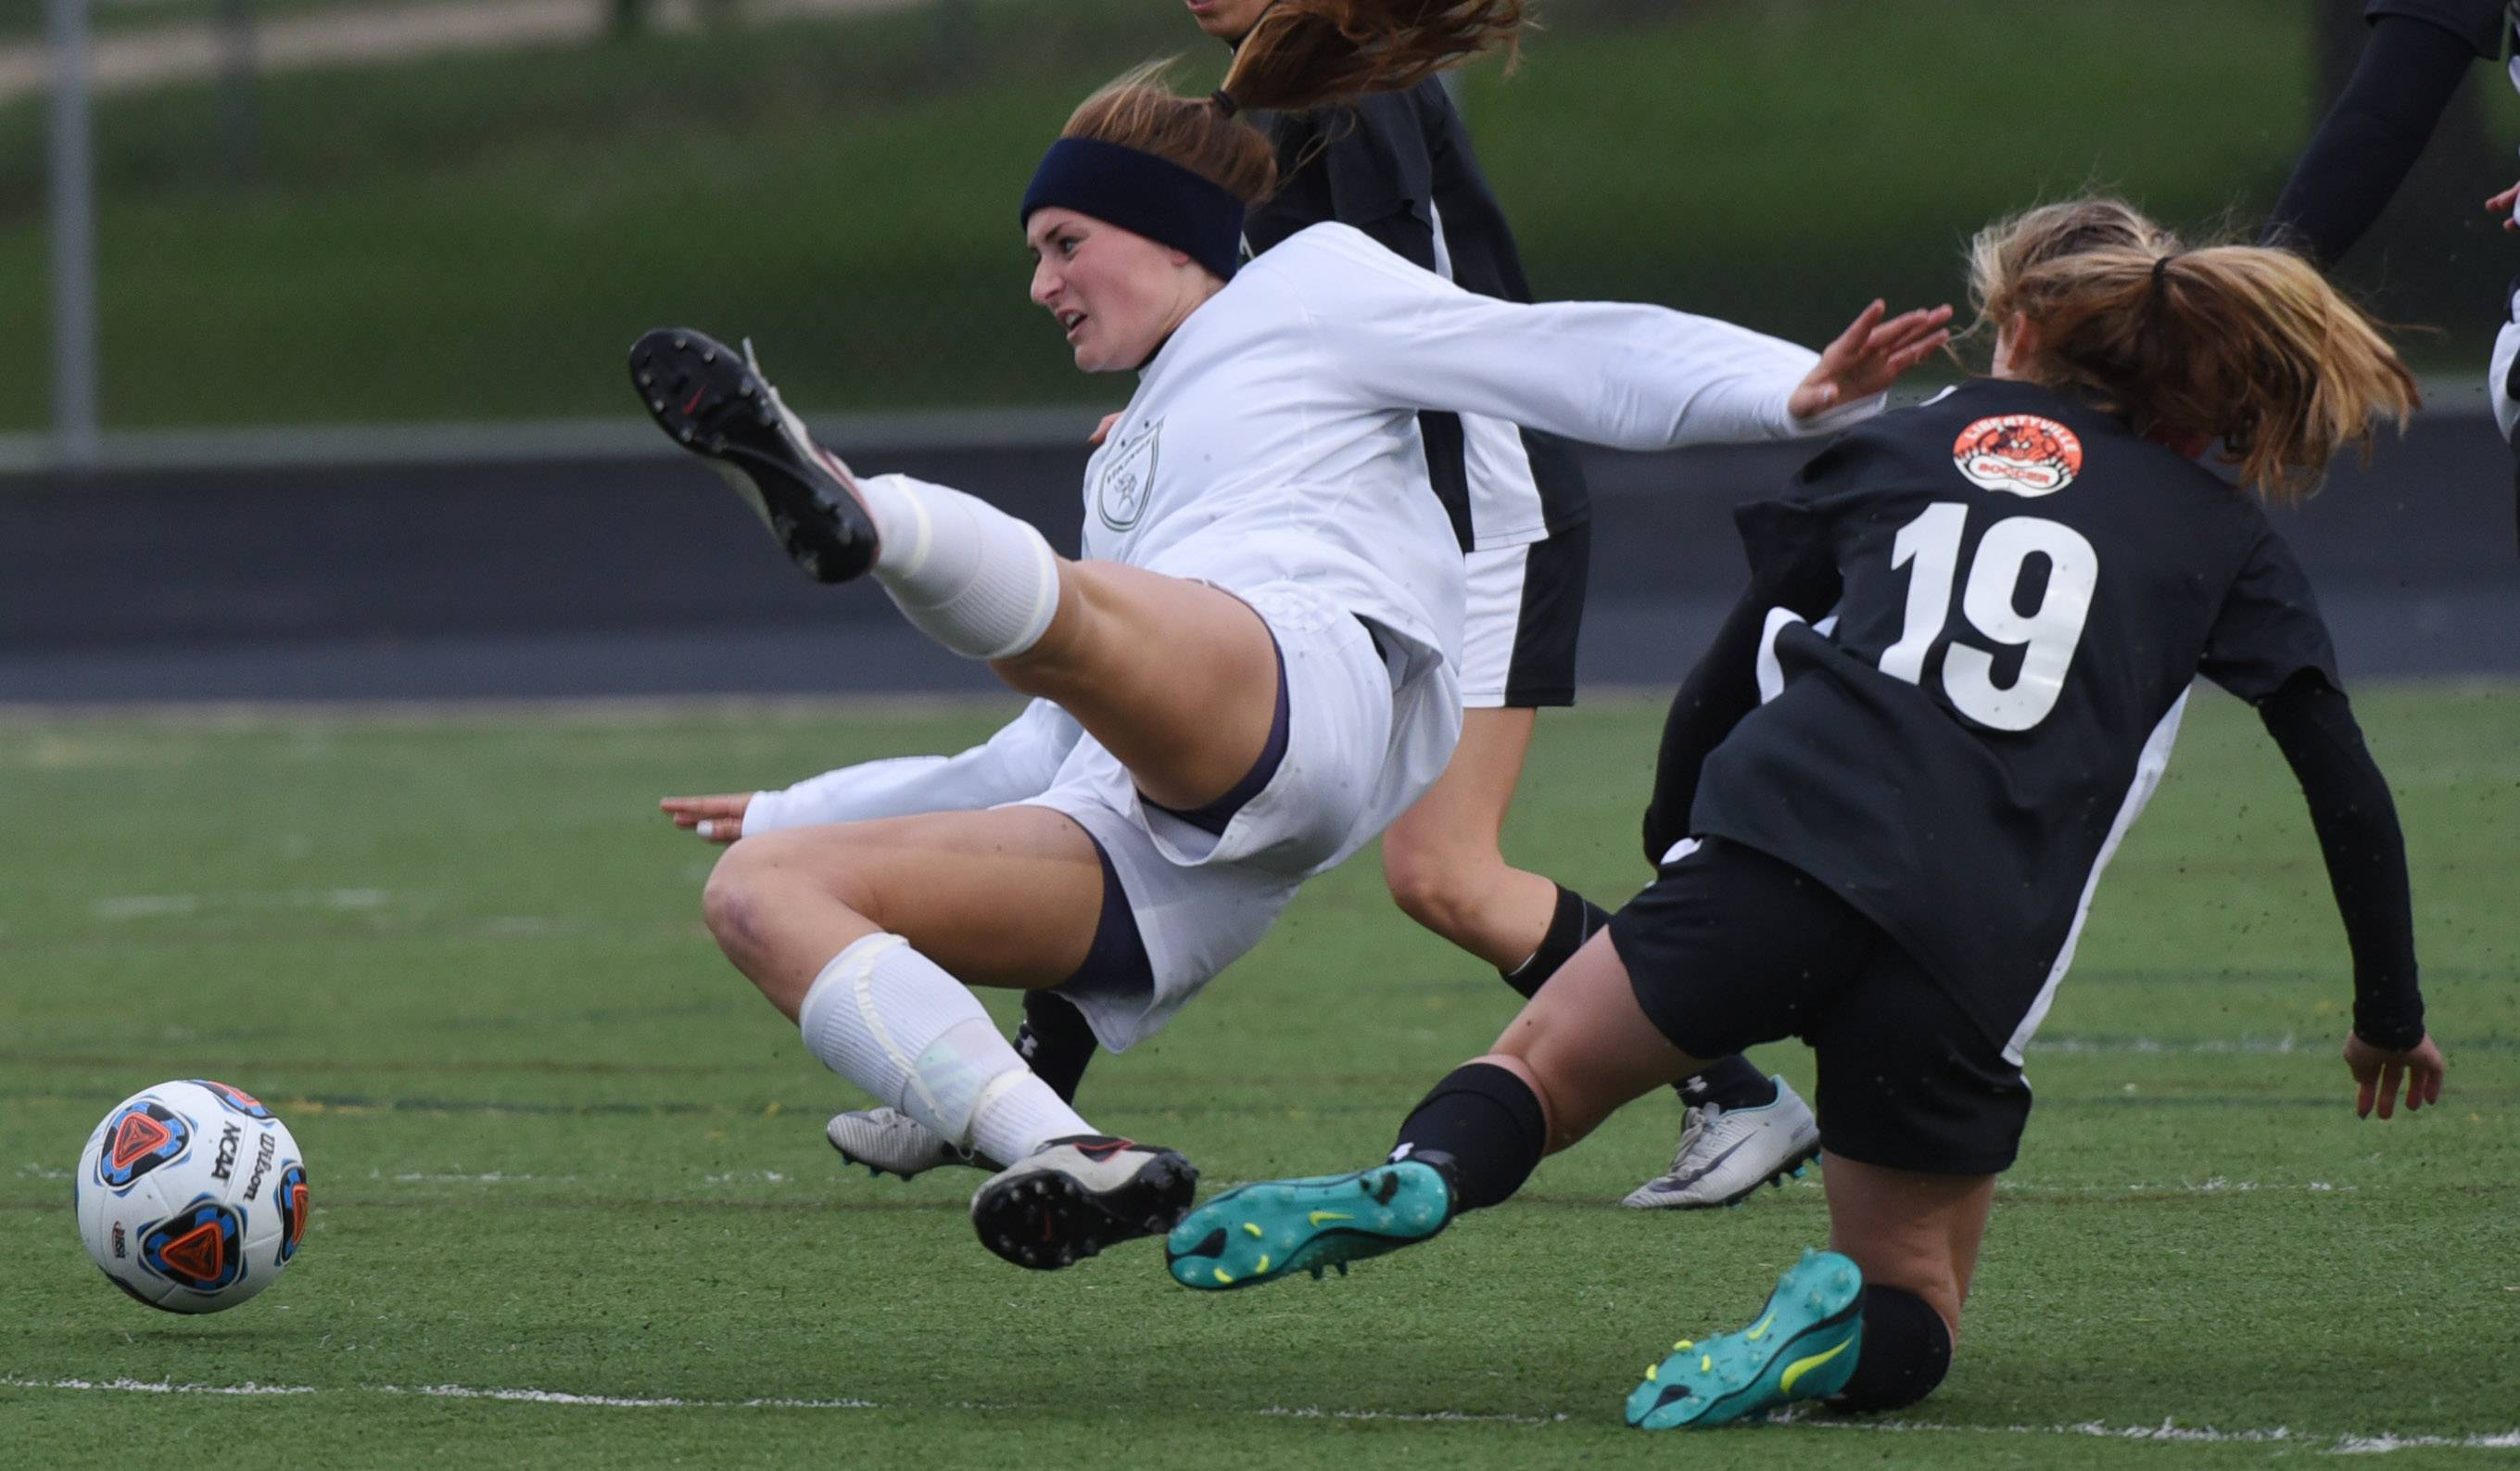 Fremd's Missy Adrian hits the turf hard after coming into contact with Libertyville's Morgan Verbeten during the Class 3A girls soccer playoff action this spring.